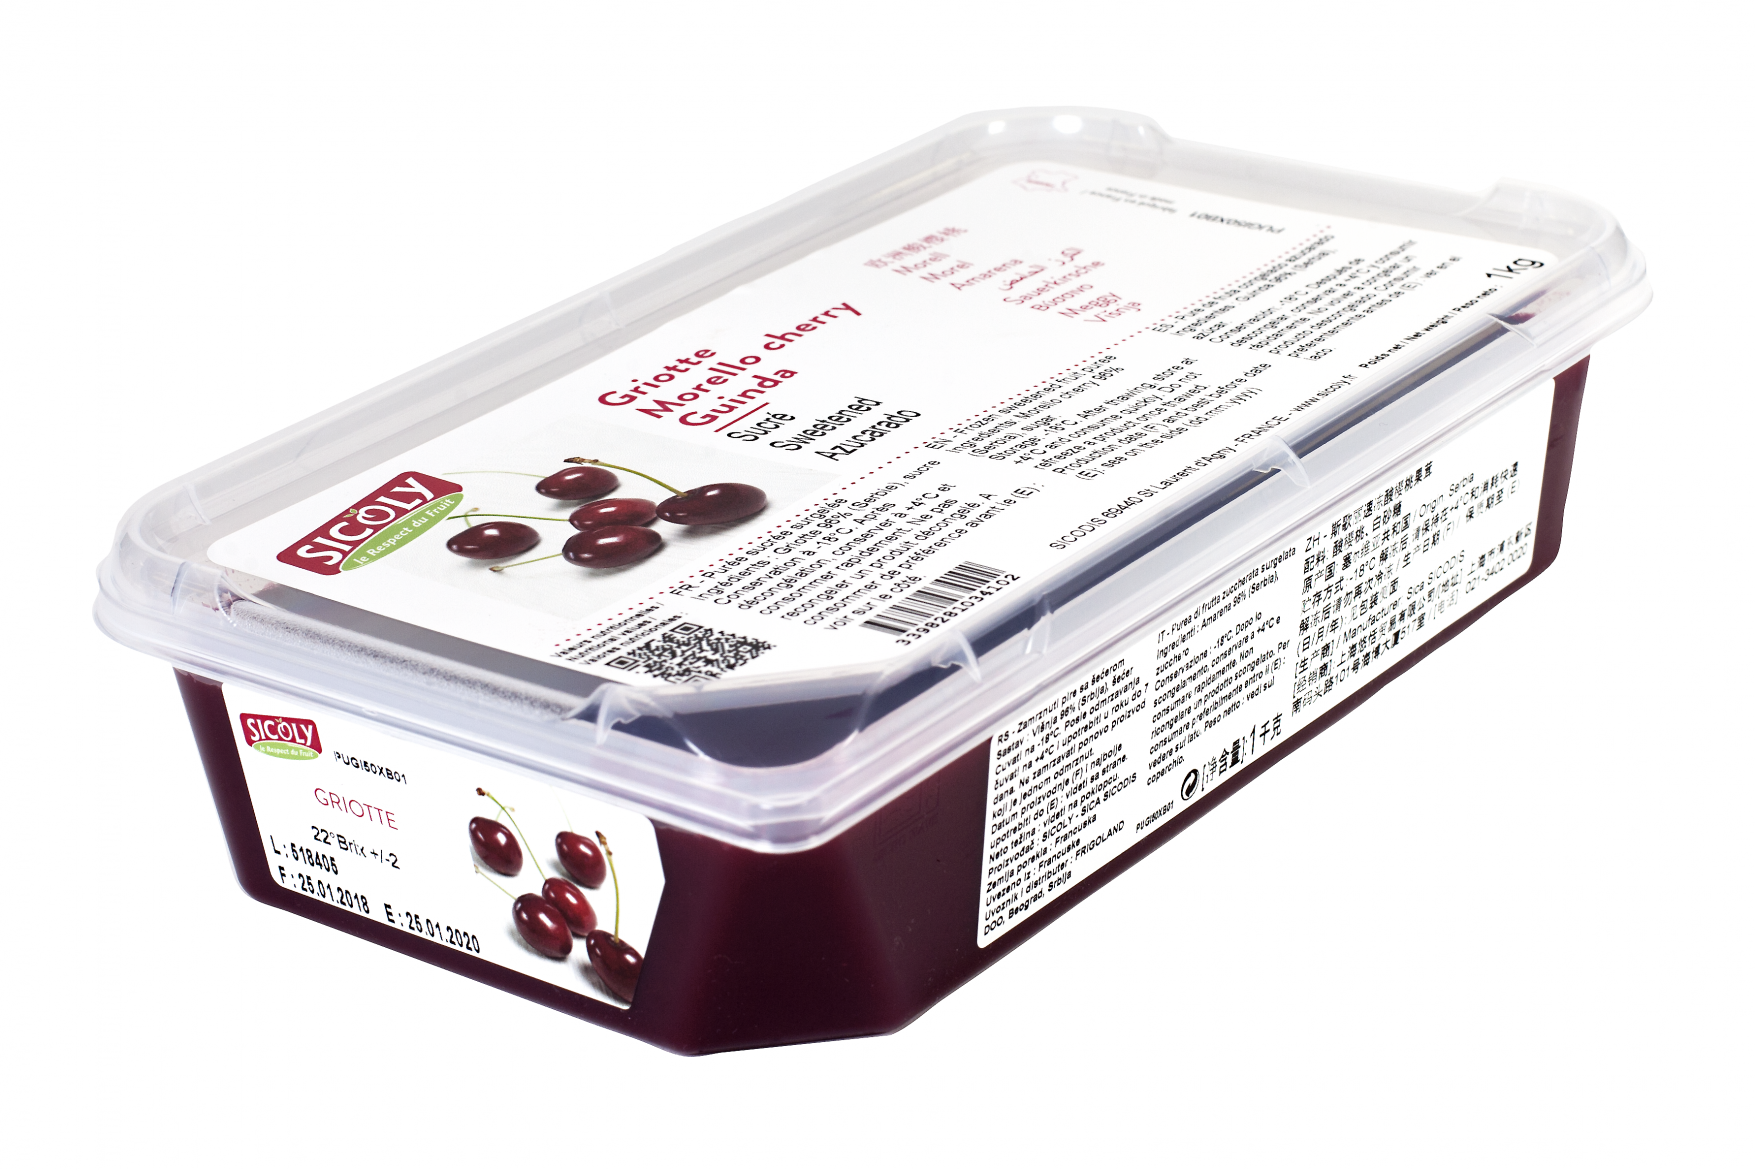 Sicoly product image No added sugar frozen morello cherry purée